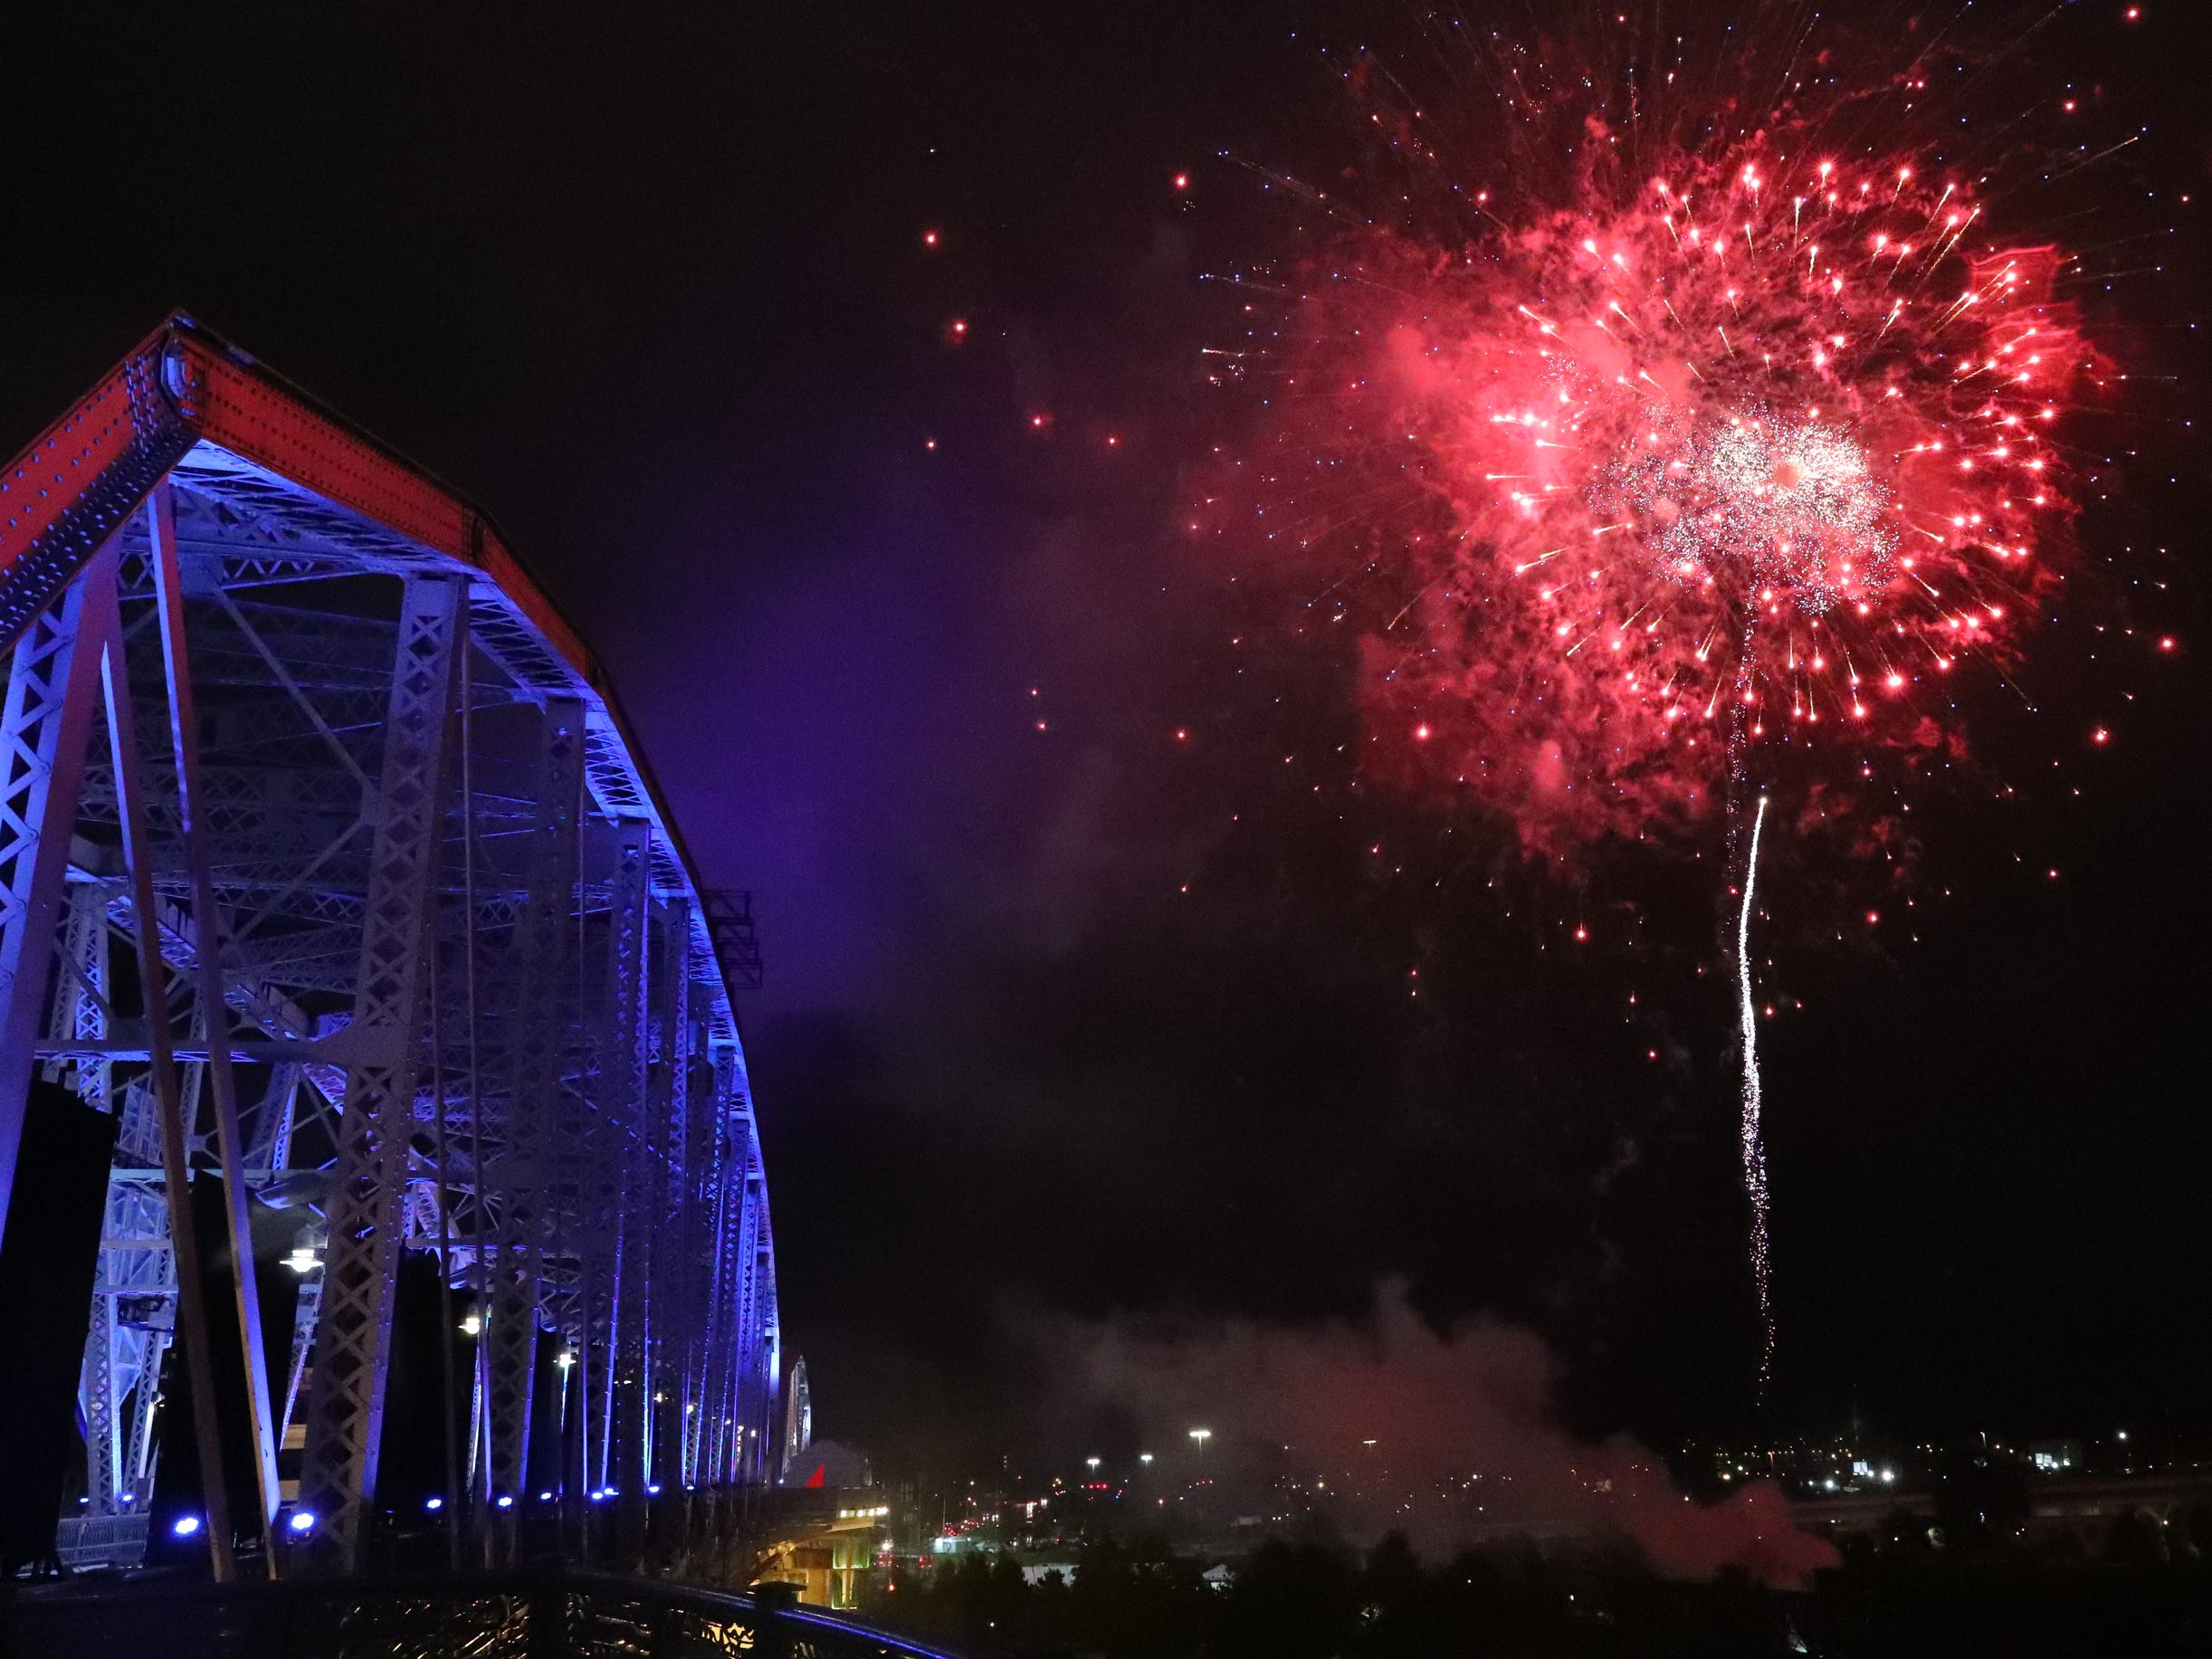 Fireworks are set off near the Seigenthaler Bridge and in the Nissan Stadium after the last player was picked in the first round of the NFL Draft on Thursday, April 25, 2019, in Nashville, Tennessee.